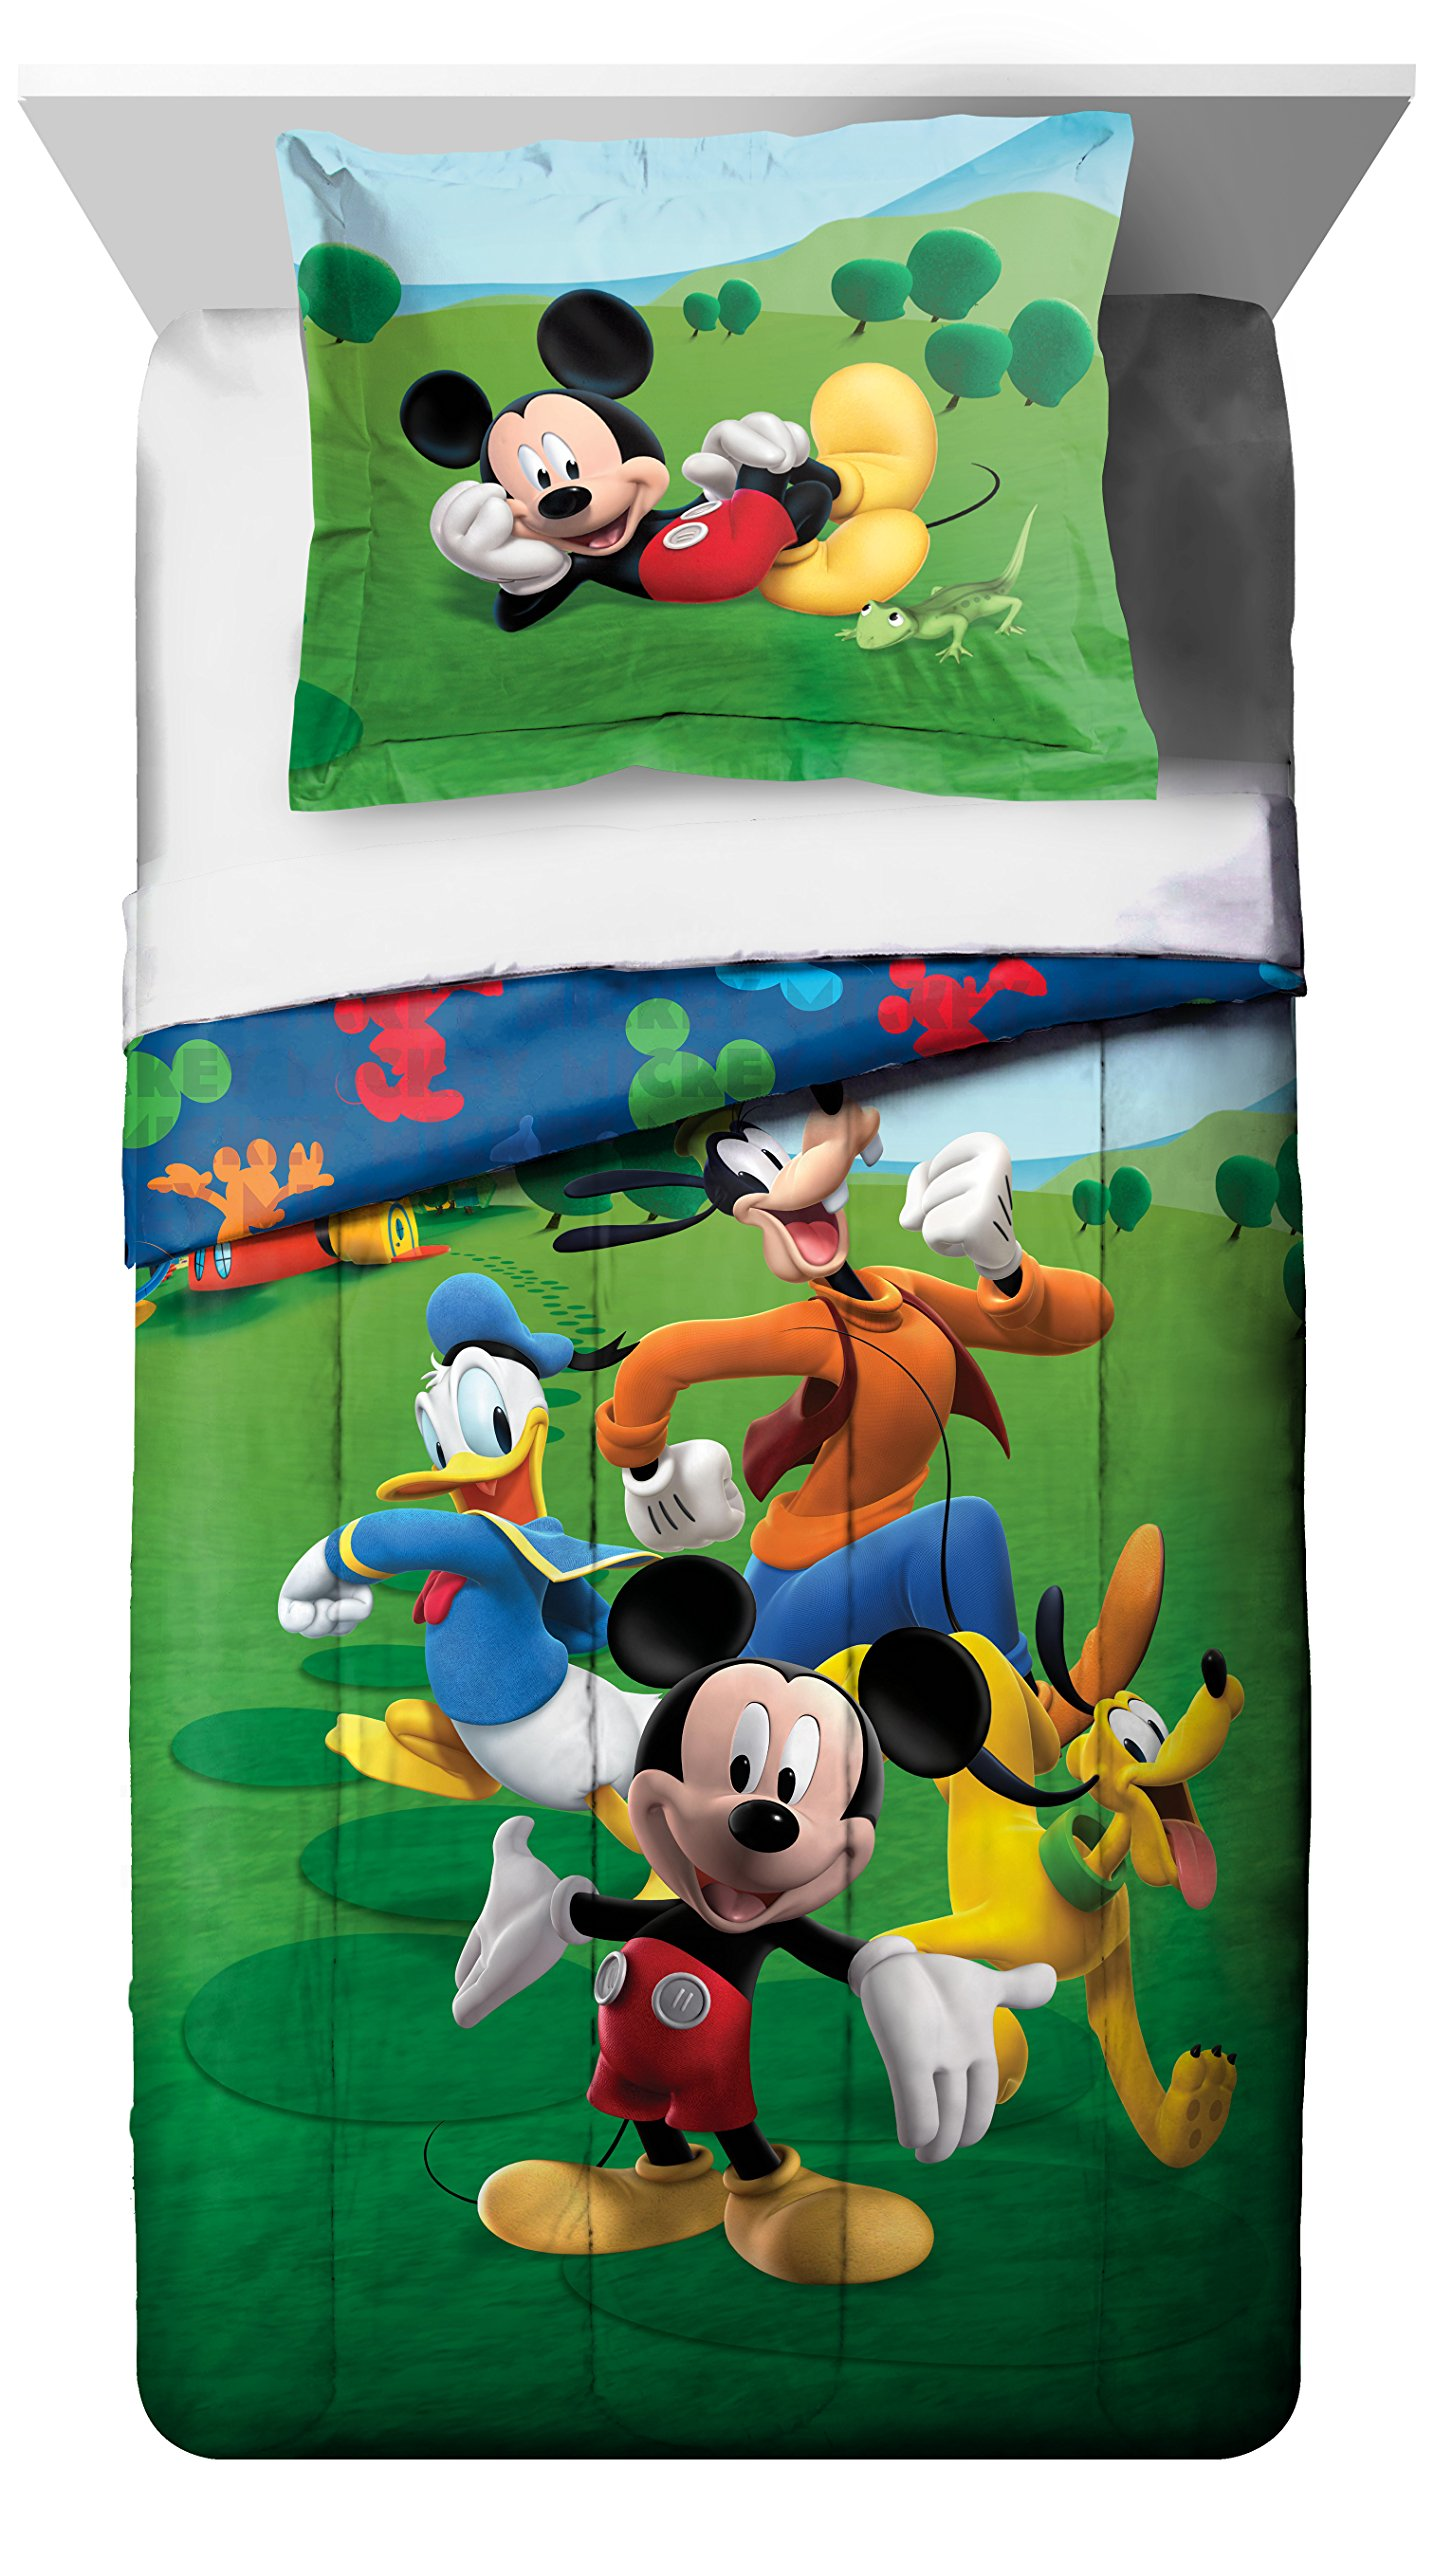 Disney Mickey Mouse Club House Adventure Twin Comforter - Super Soft Kids Reversible Bedding features Mickey Mouse and Friends - Fade Resistant, Includes 1 Bonus Sham (Official Product) by Disney